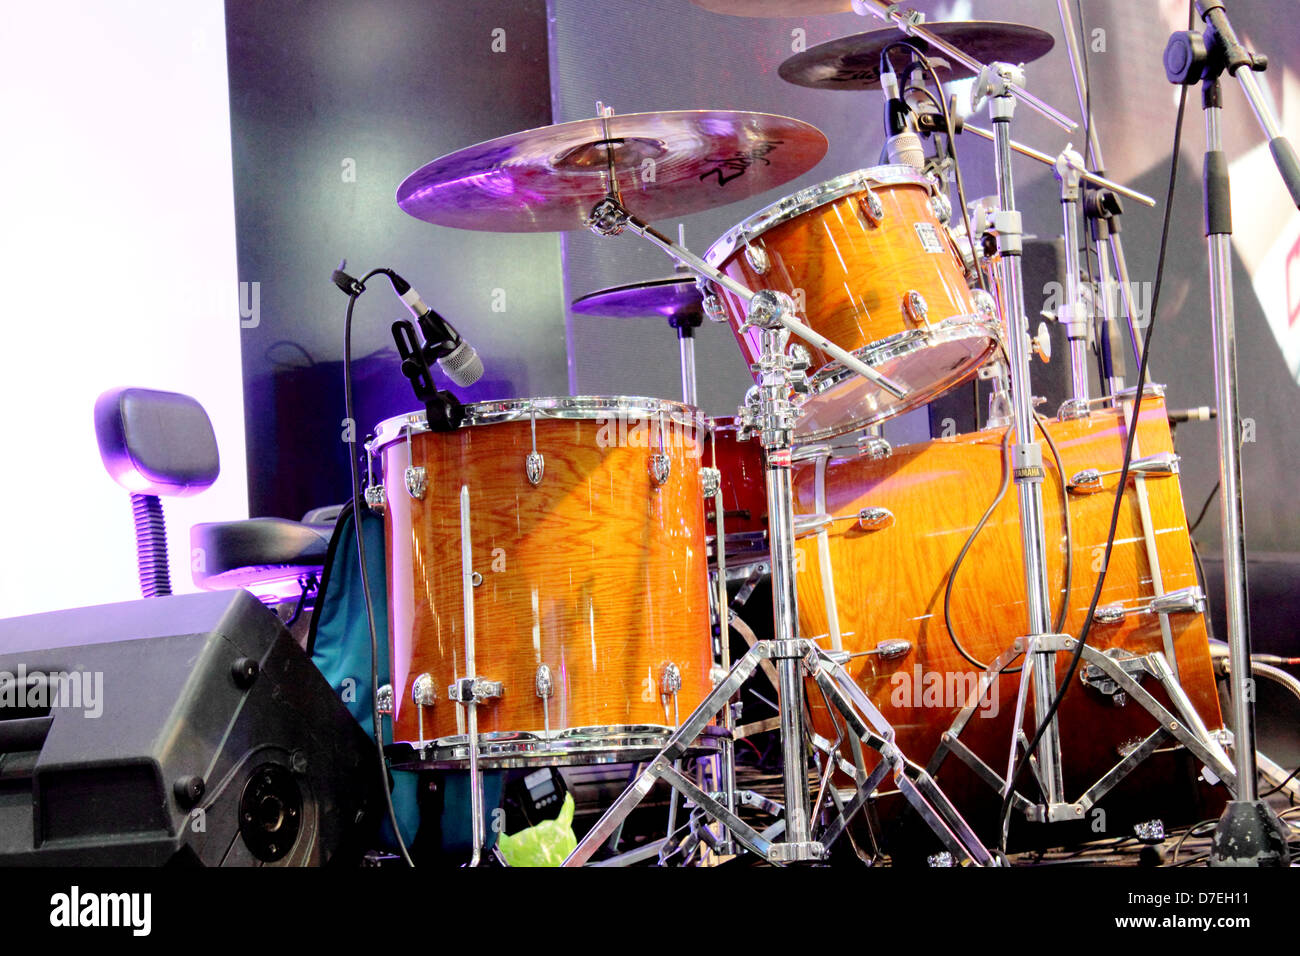 Concert Stage Set Up With A Drum Set Stock Photo 56254381 Alamy